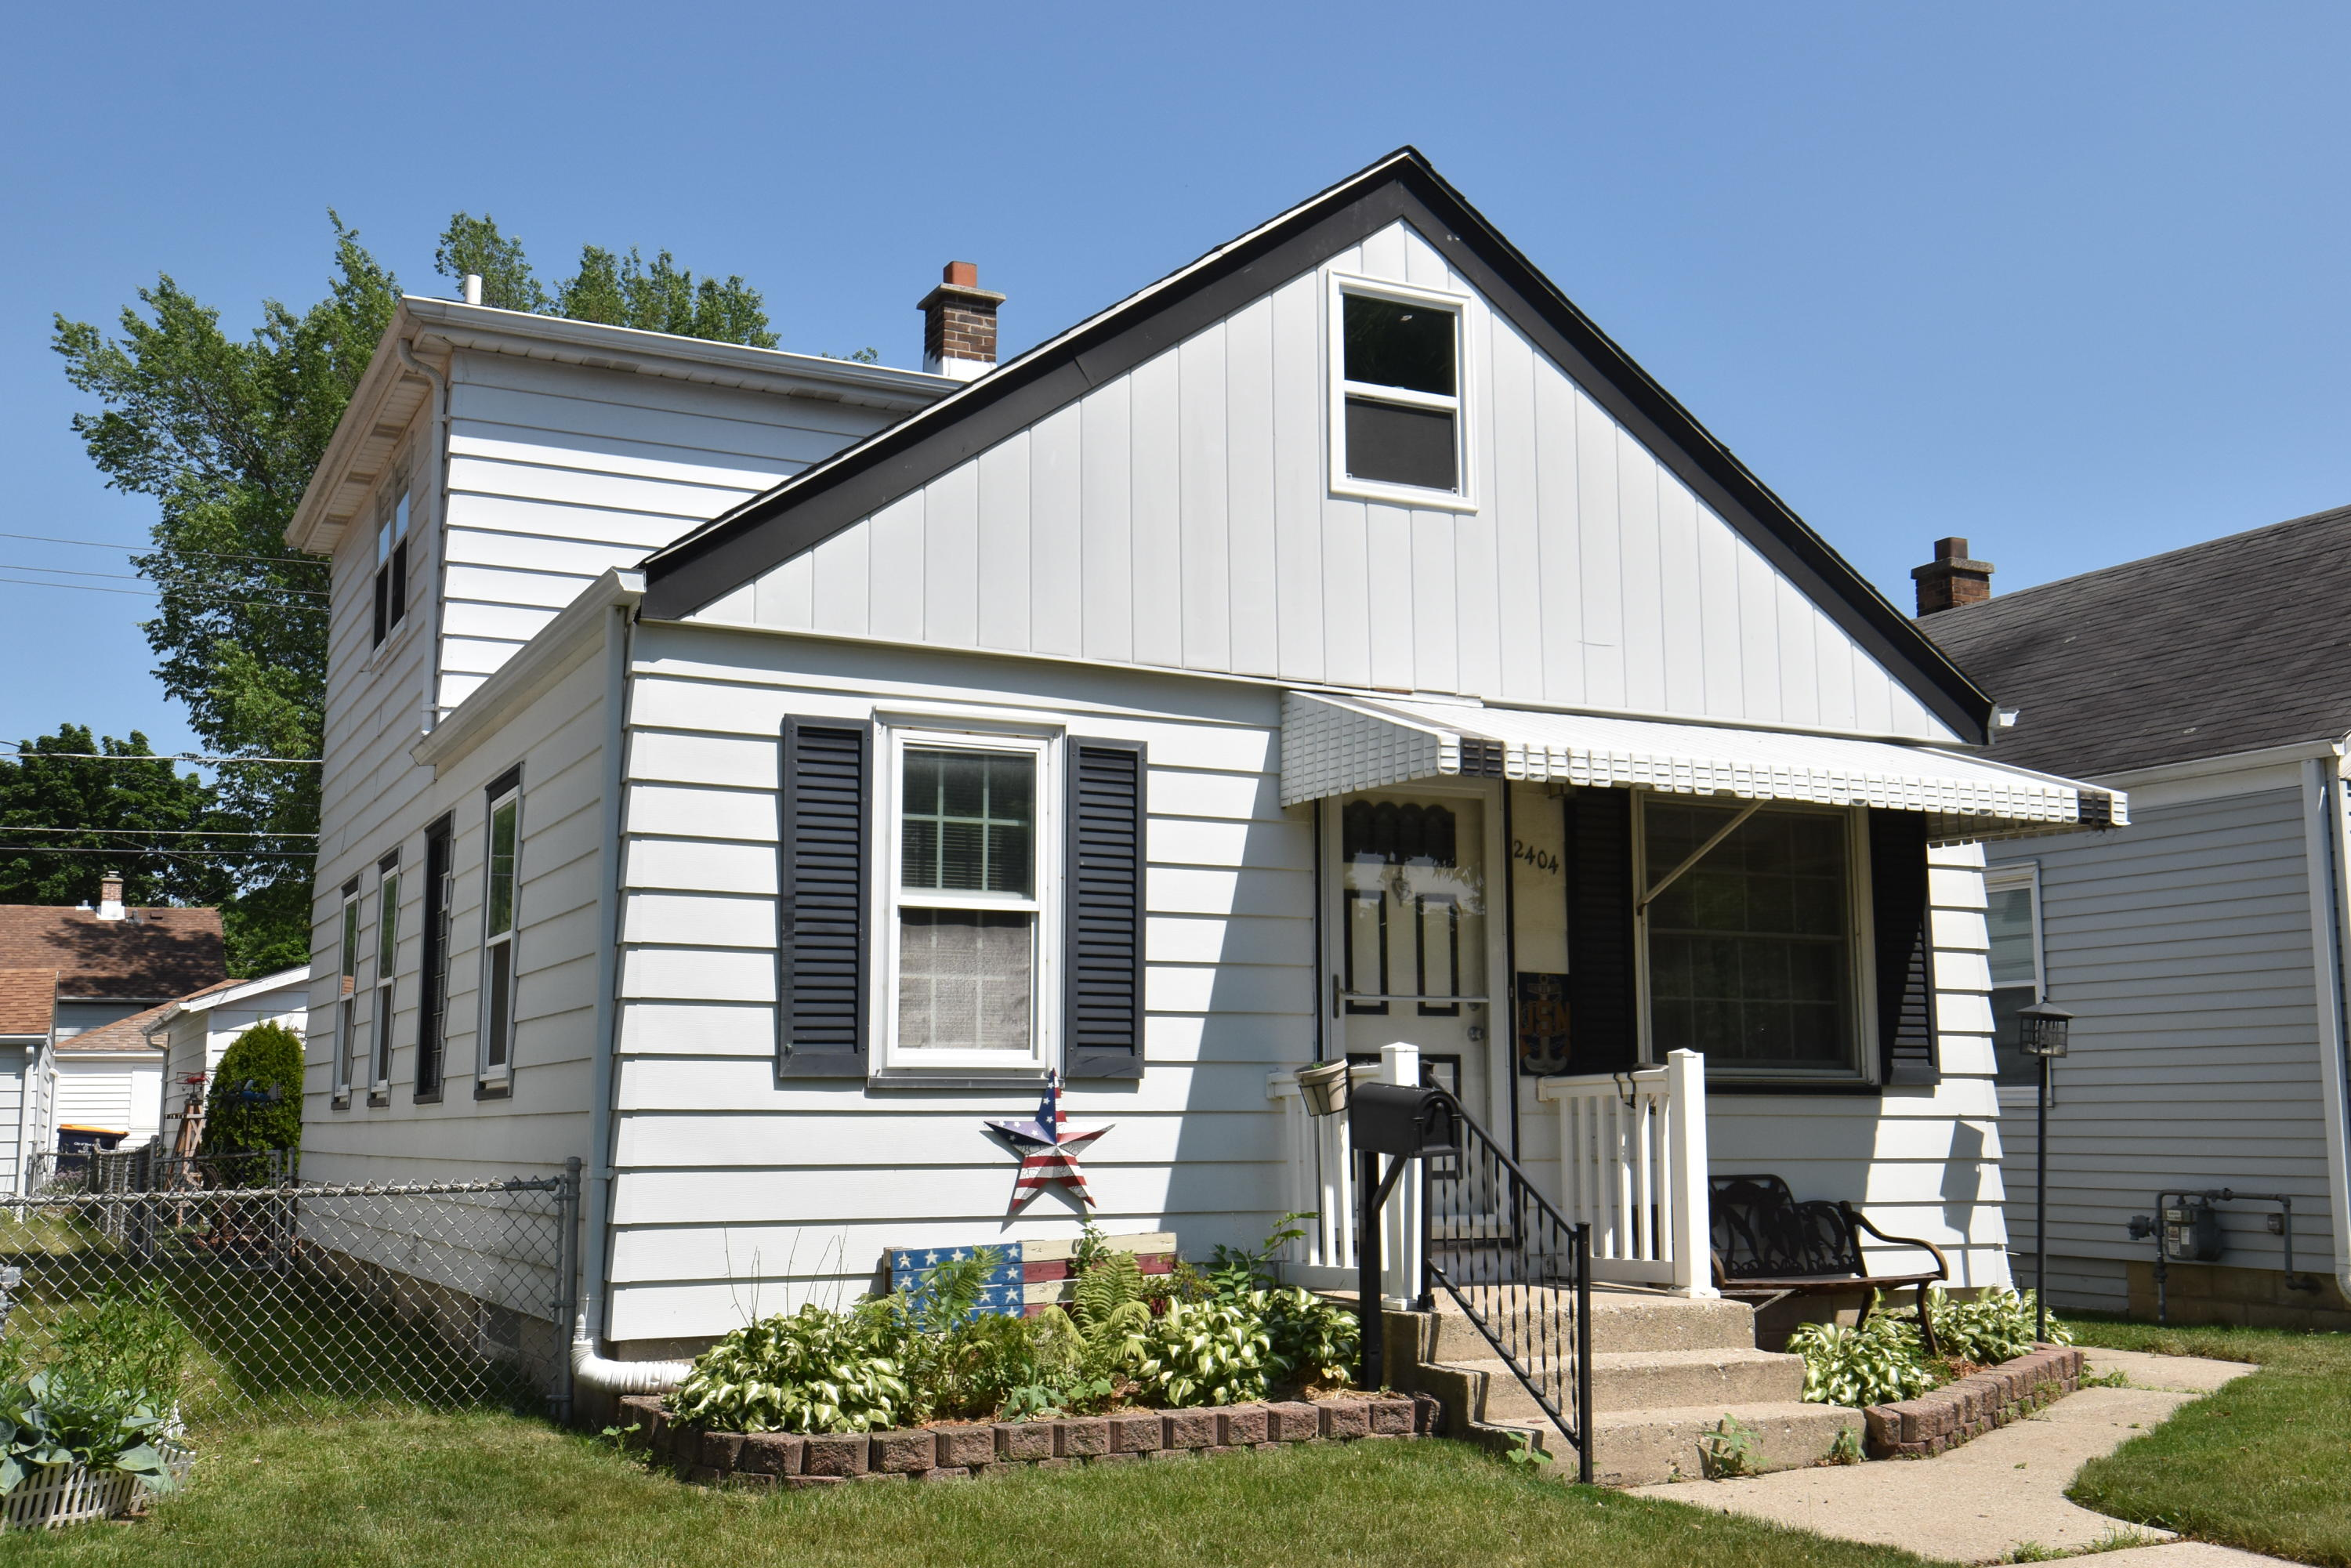 2404 S 75th St, West Allis, Wisconsin 53219, 3 Bedrooms Bedrooms, ,2 BathroomsBathrooms,Single Family,For Sale,2404 S 75th St,2,1746019